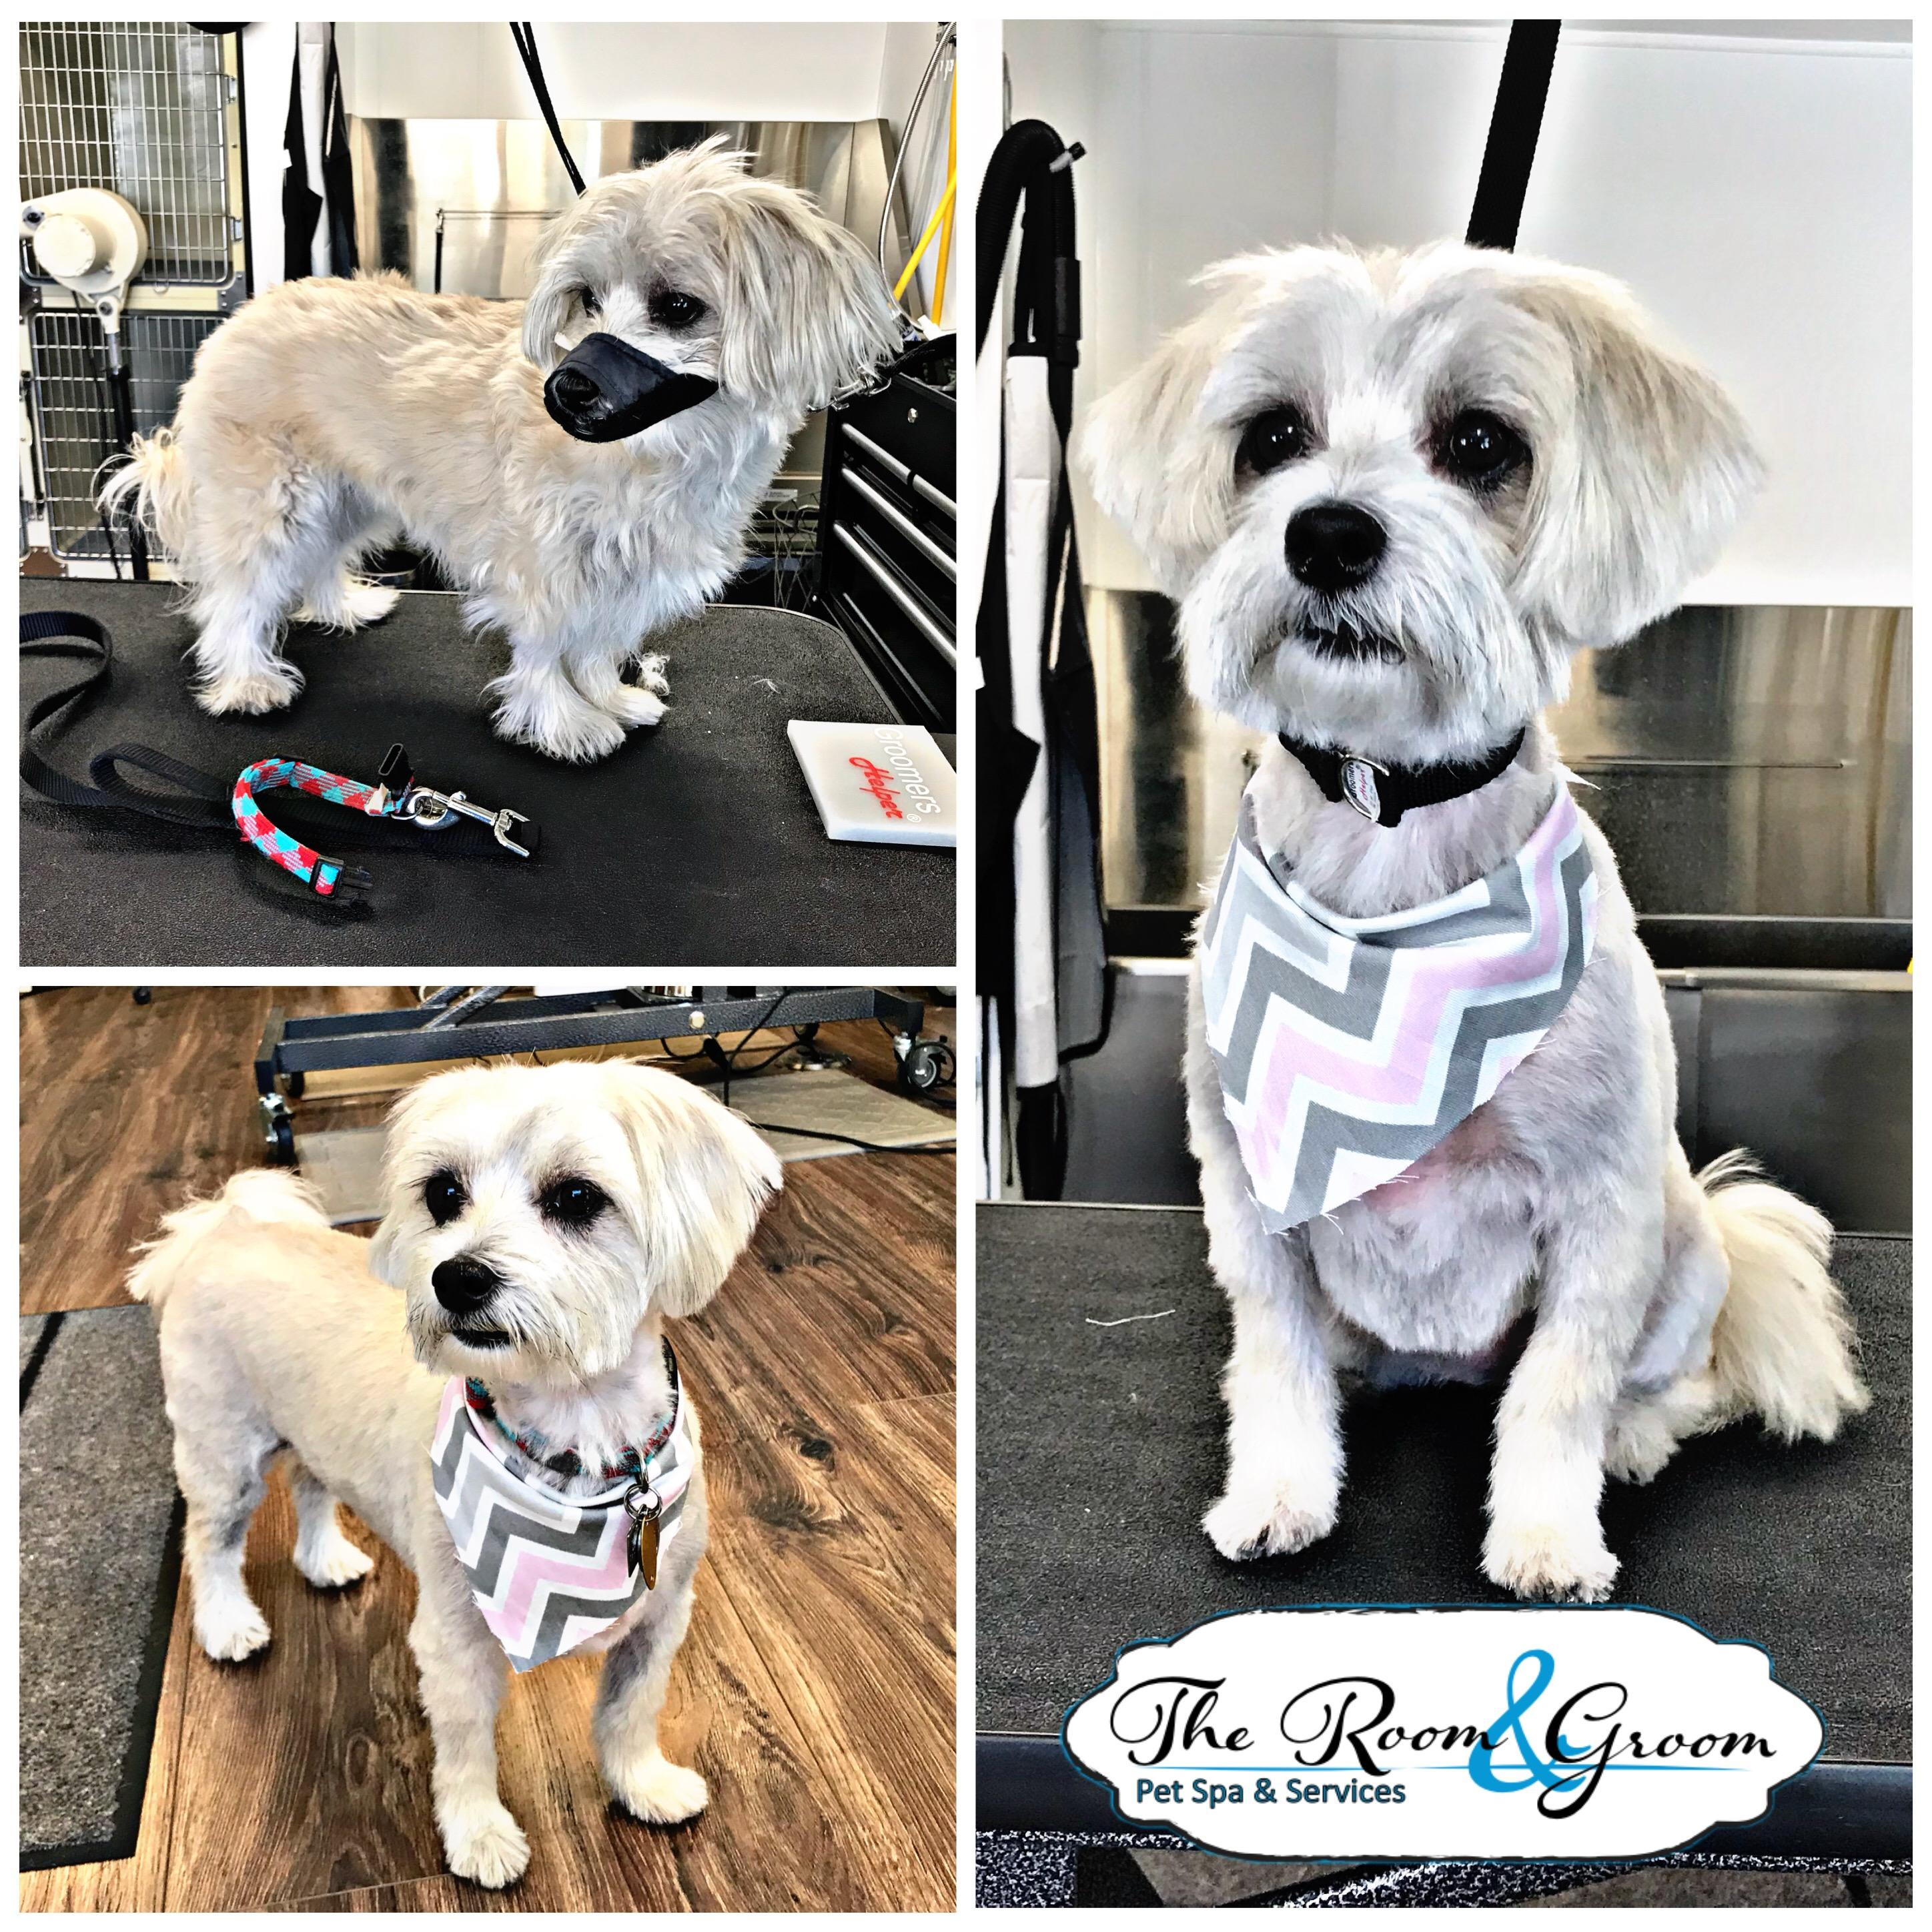 The Room & Groom, Pet Spa & Services image 34